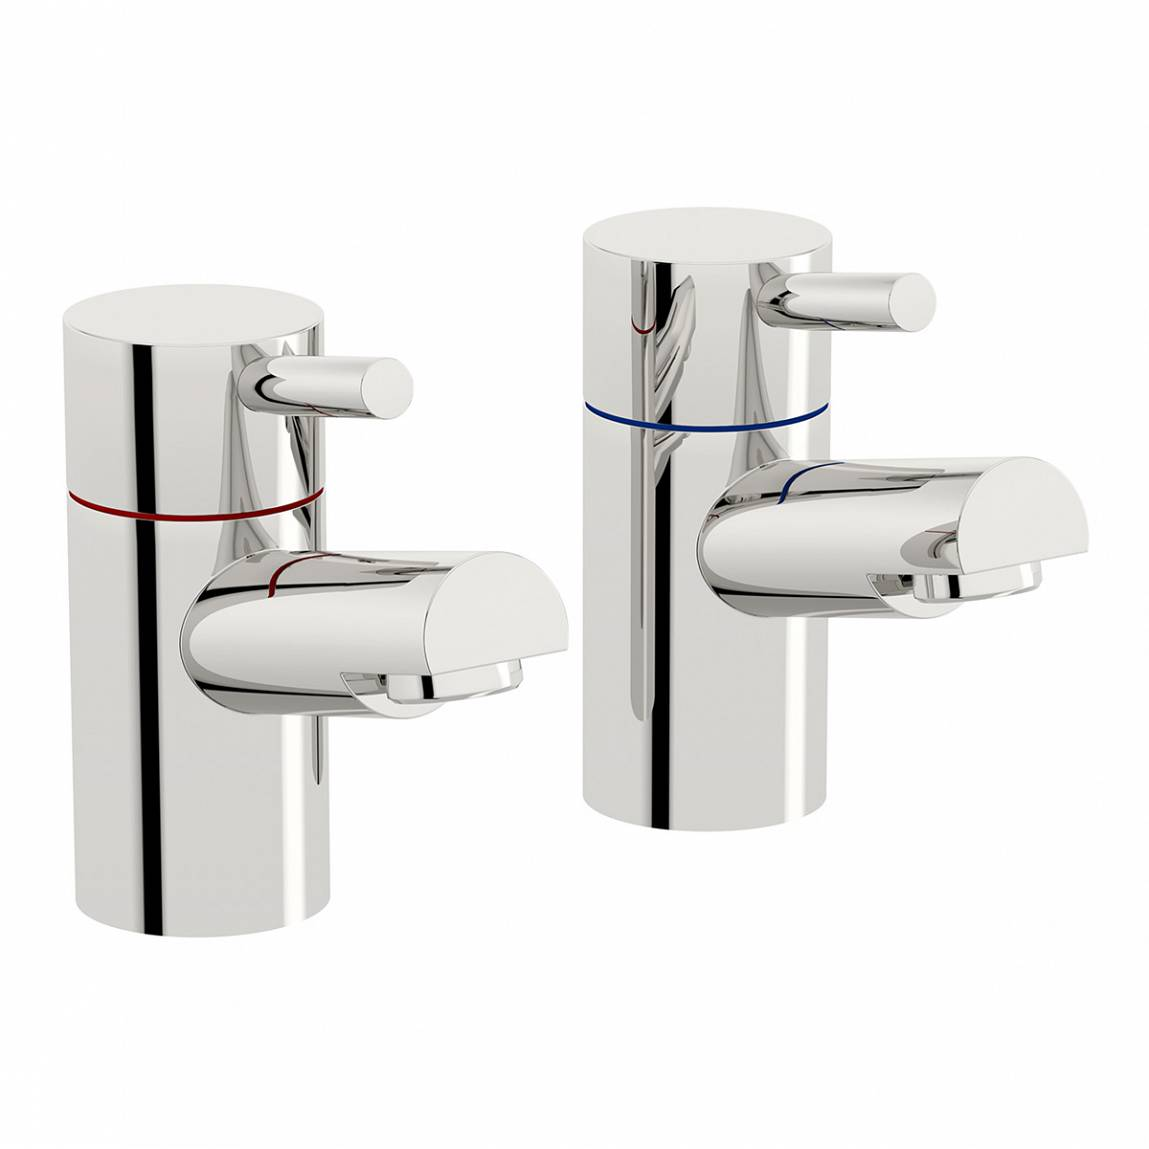 Image of Matrix Bath Taps